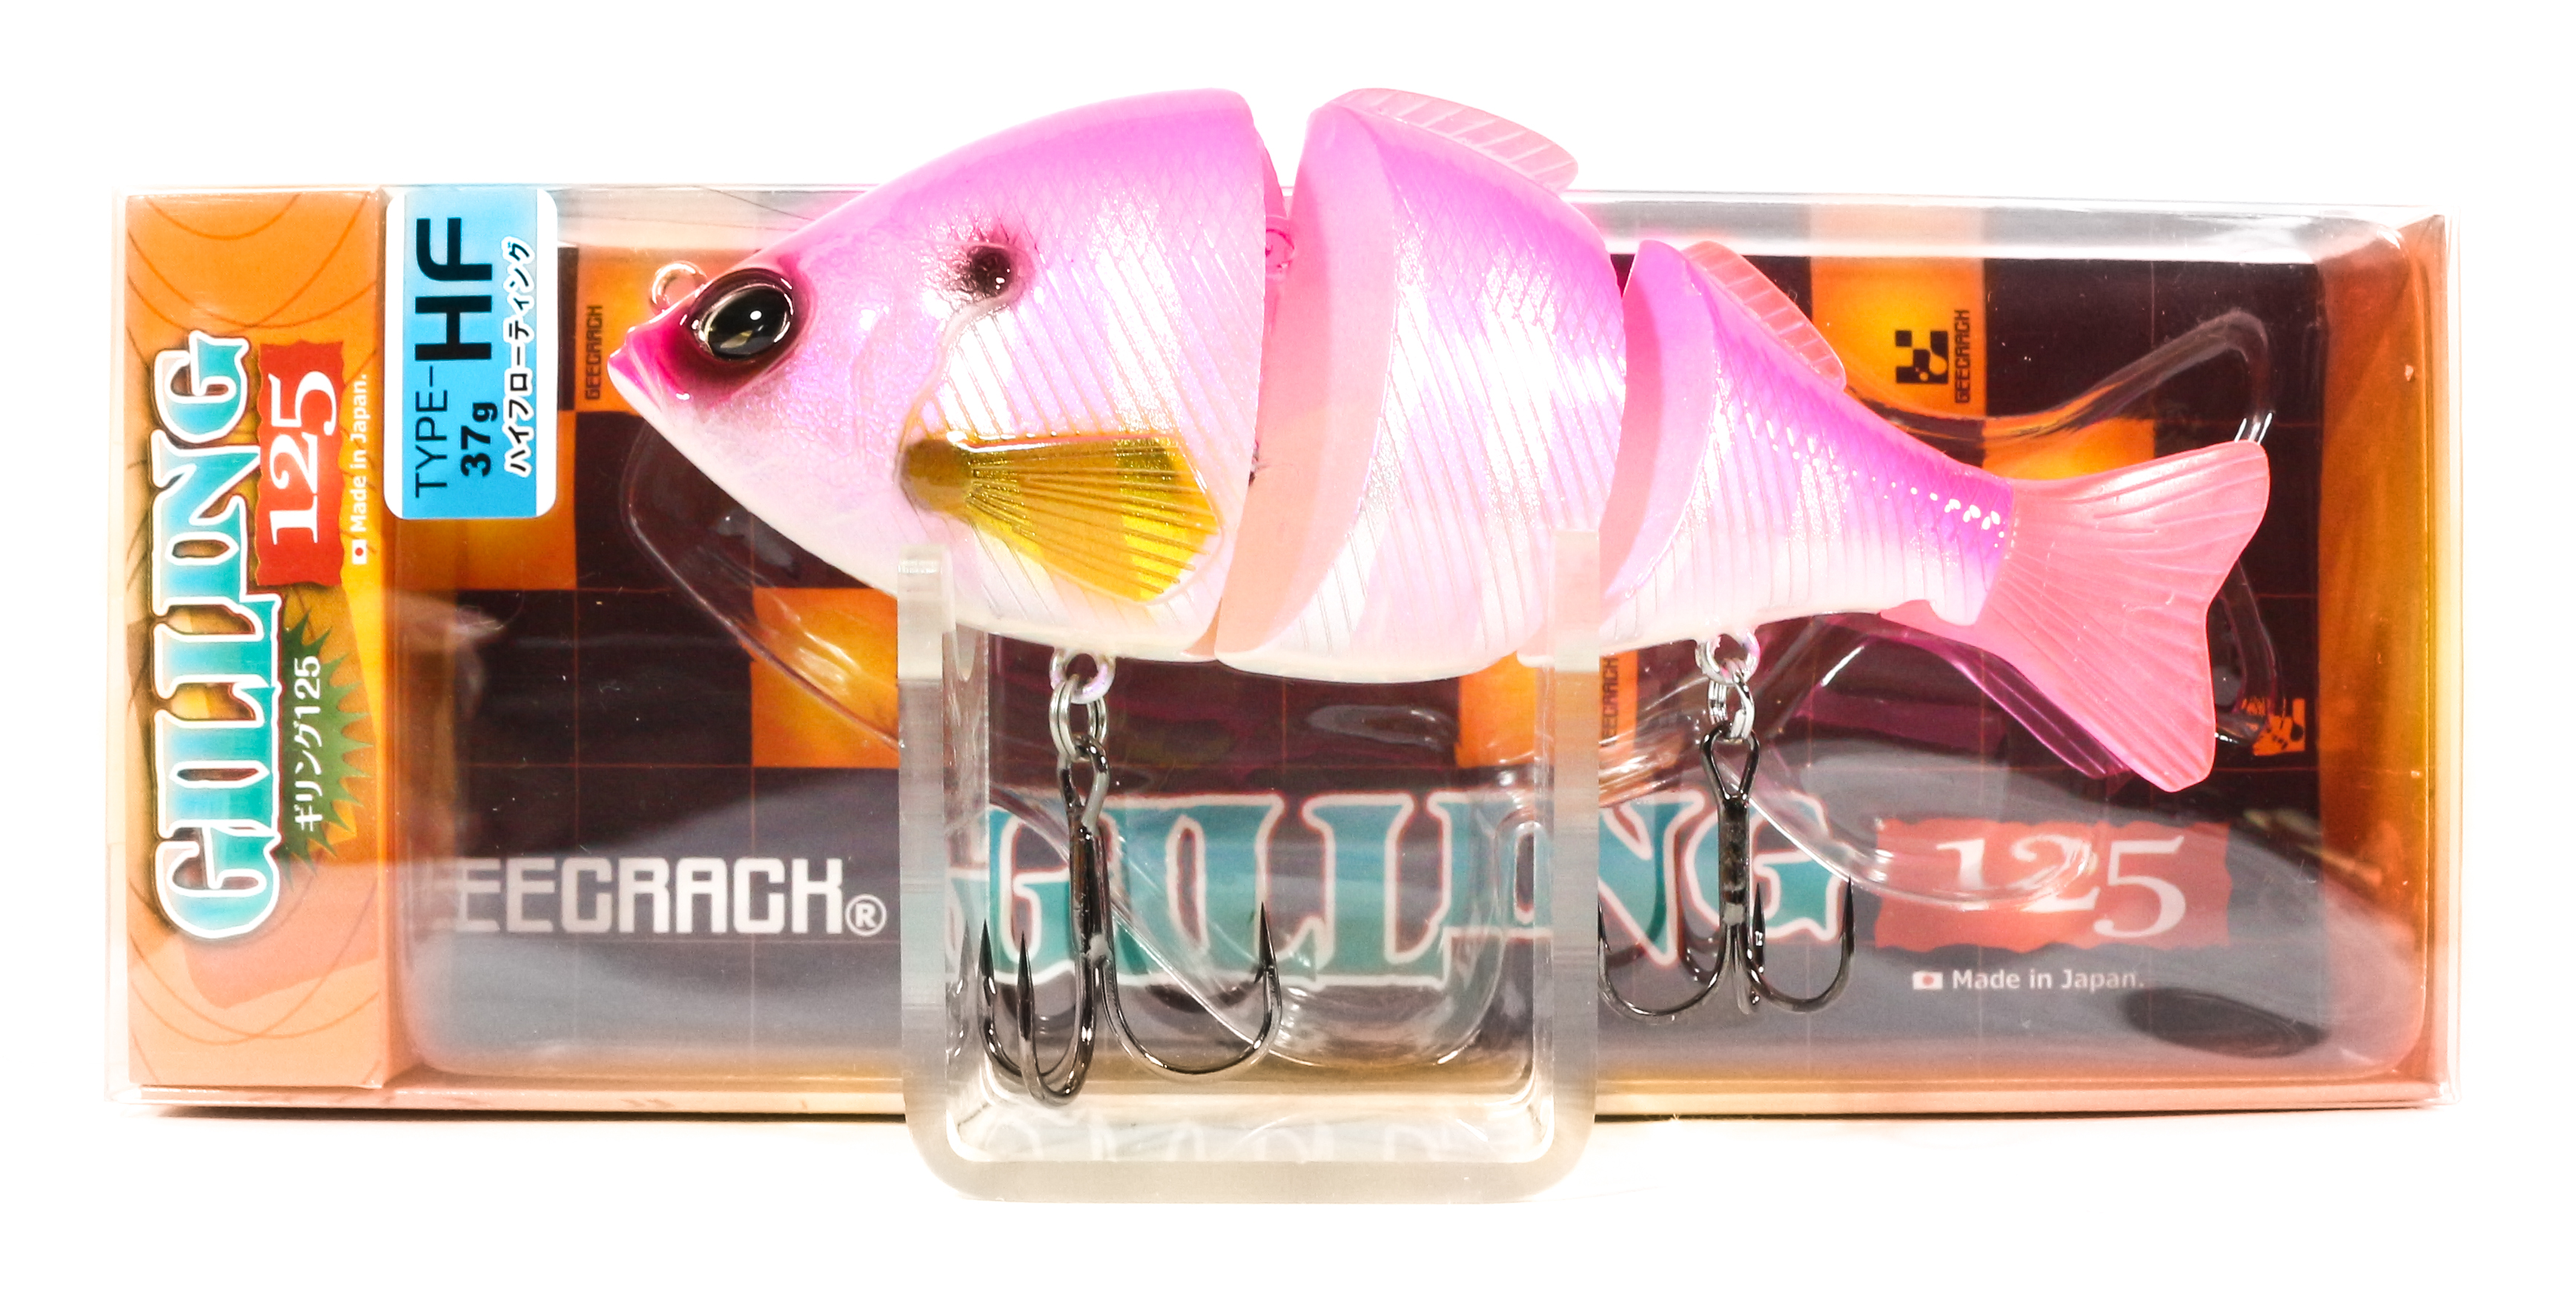 Sale Gee Crack Gilling 125 HF Jointed High Floating Lure 033 (8430)